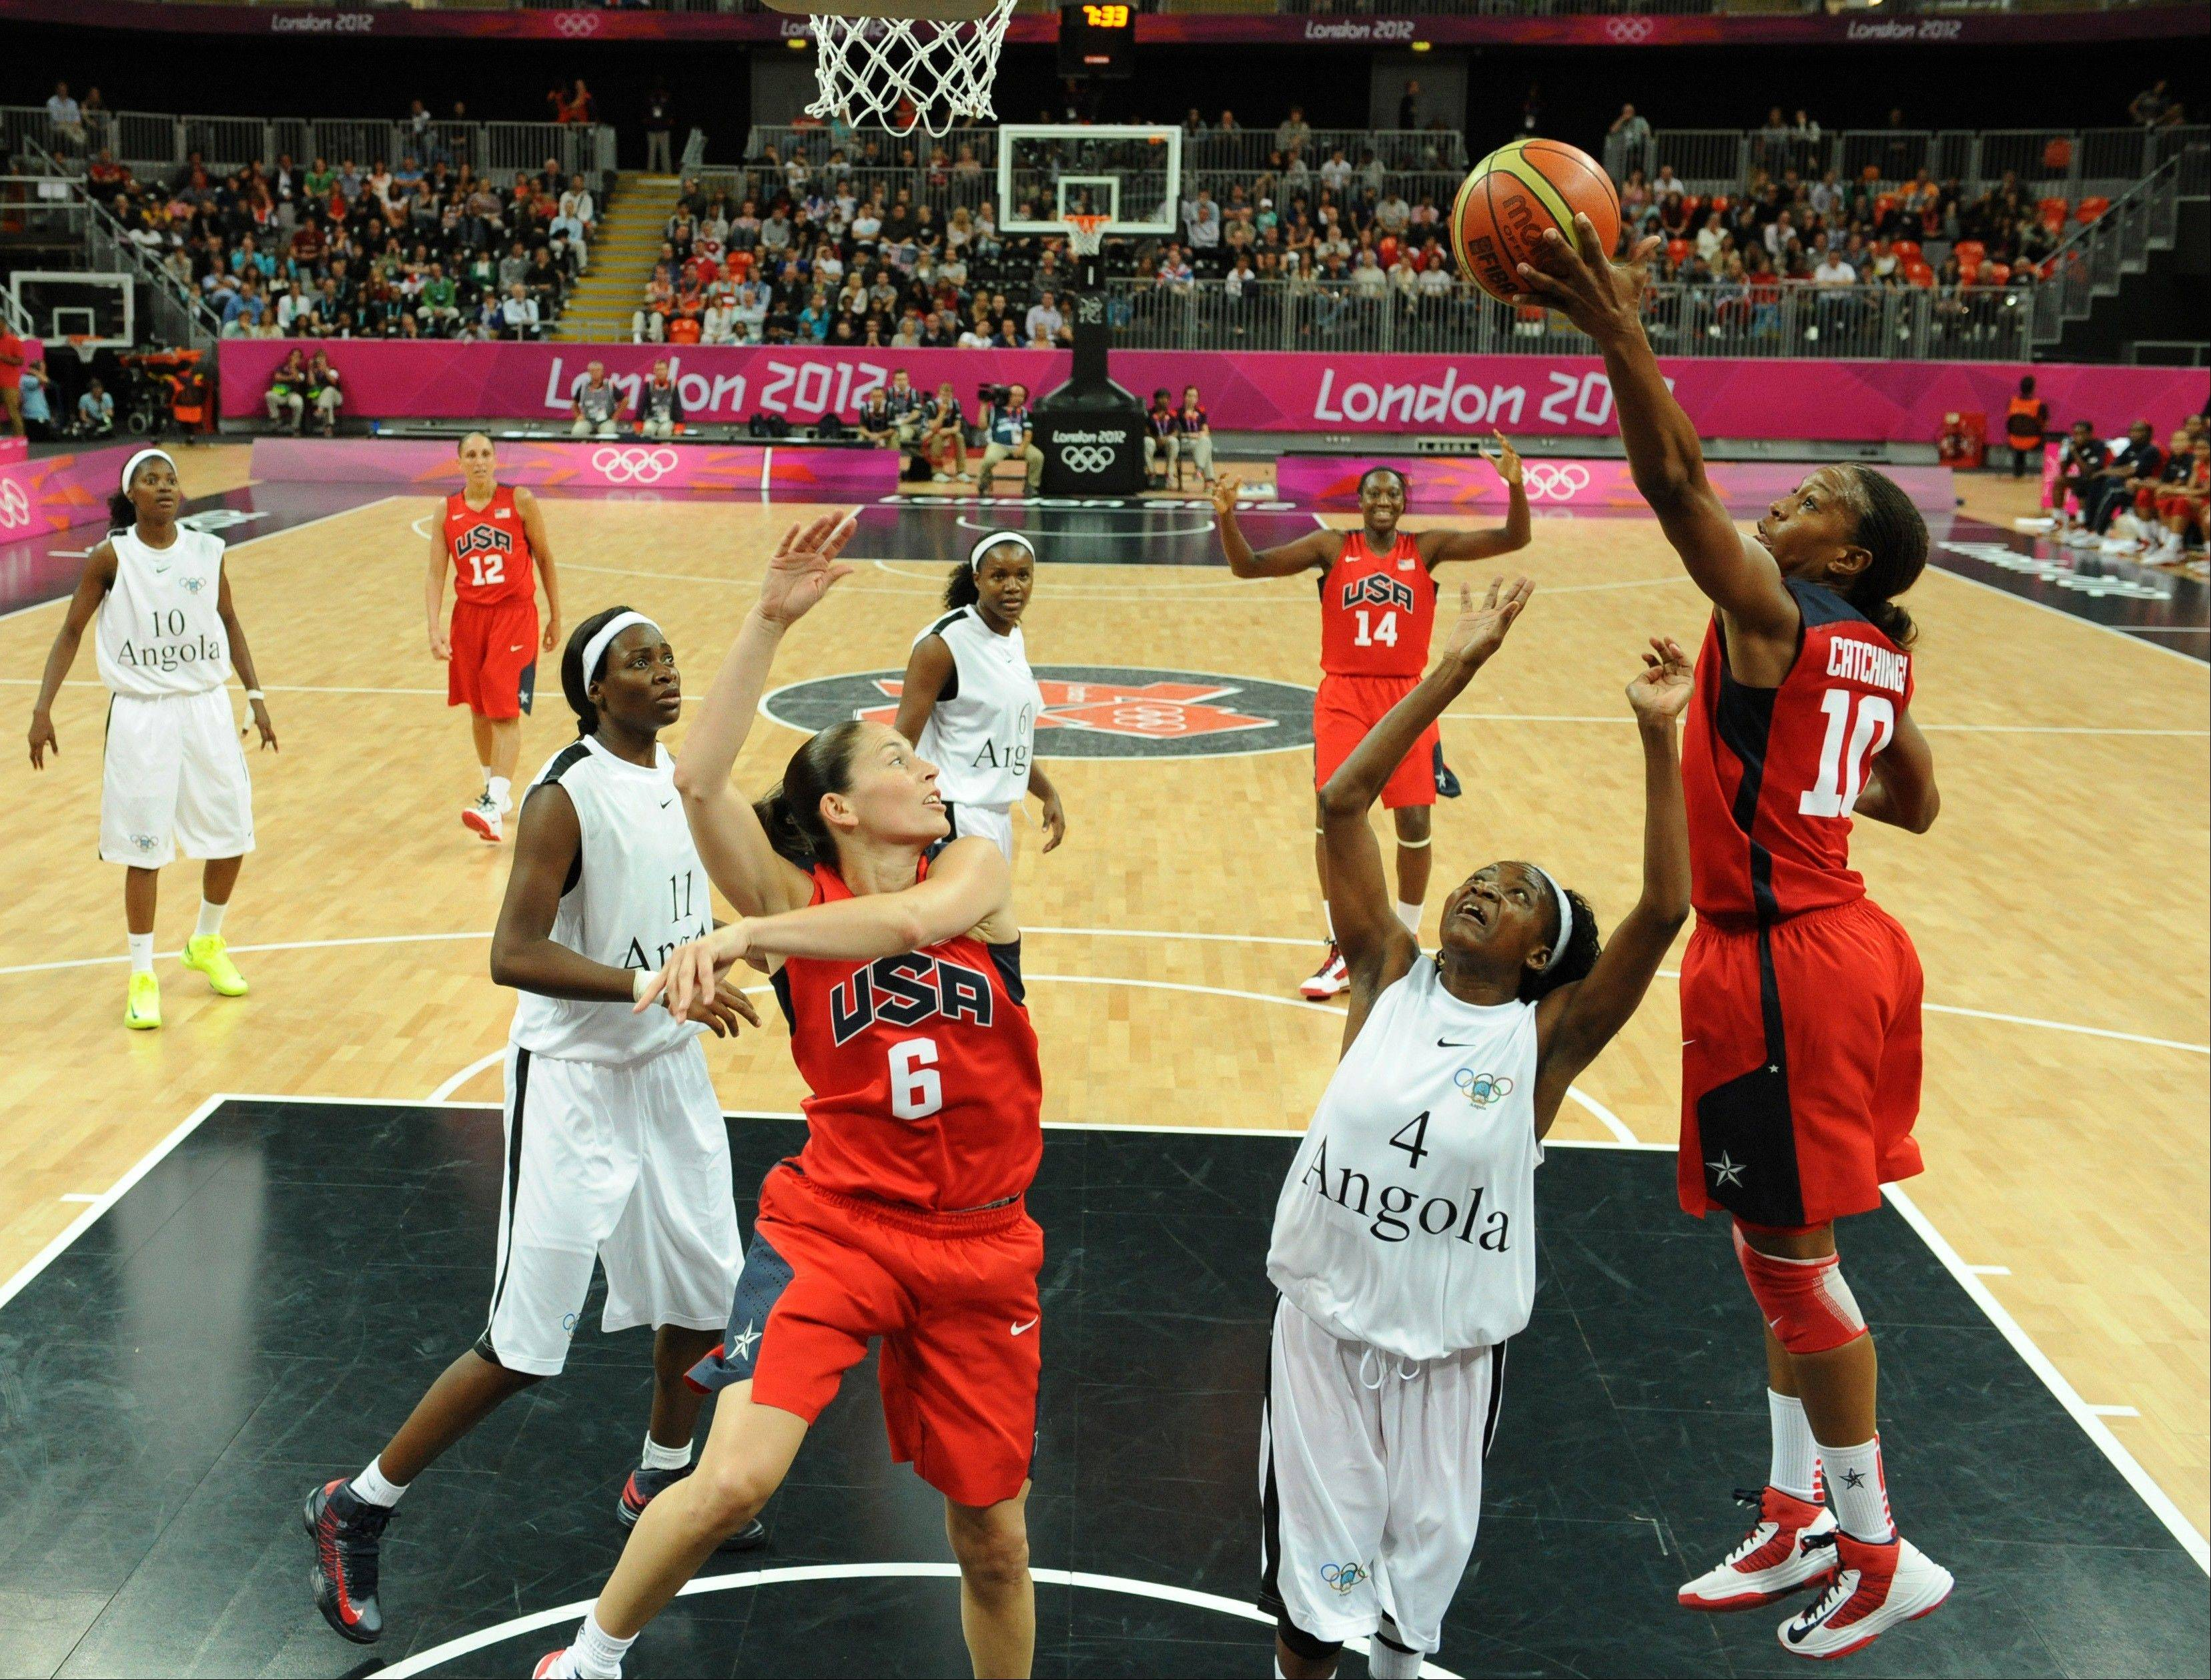 United States� forward and Stevenson High School grad Tamika Catchings, right, and guard Sue Bird, center, vie for the ball with Angola�s guard Catarina Camufal, second from right, during Monday�s women�s preliminary round group A basketball match at the 2012 Summer Olympics.